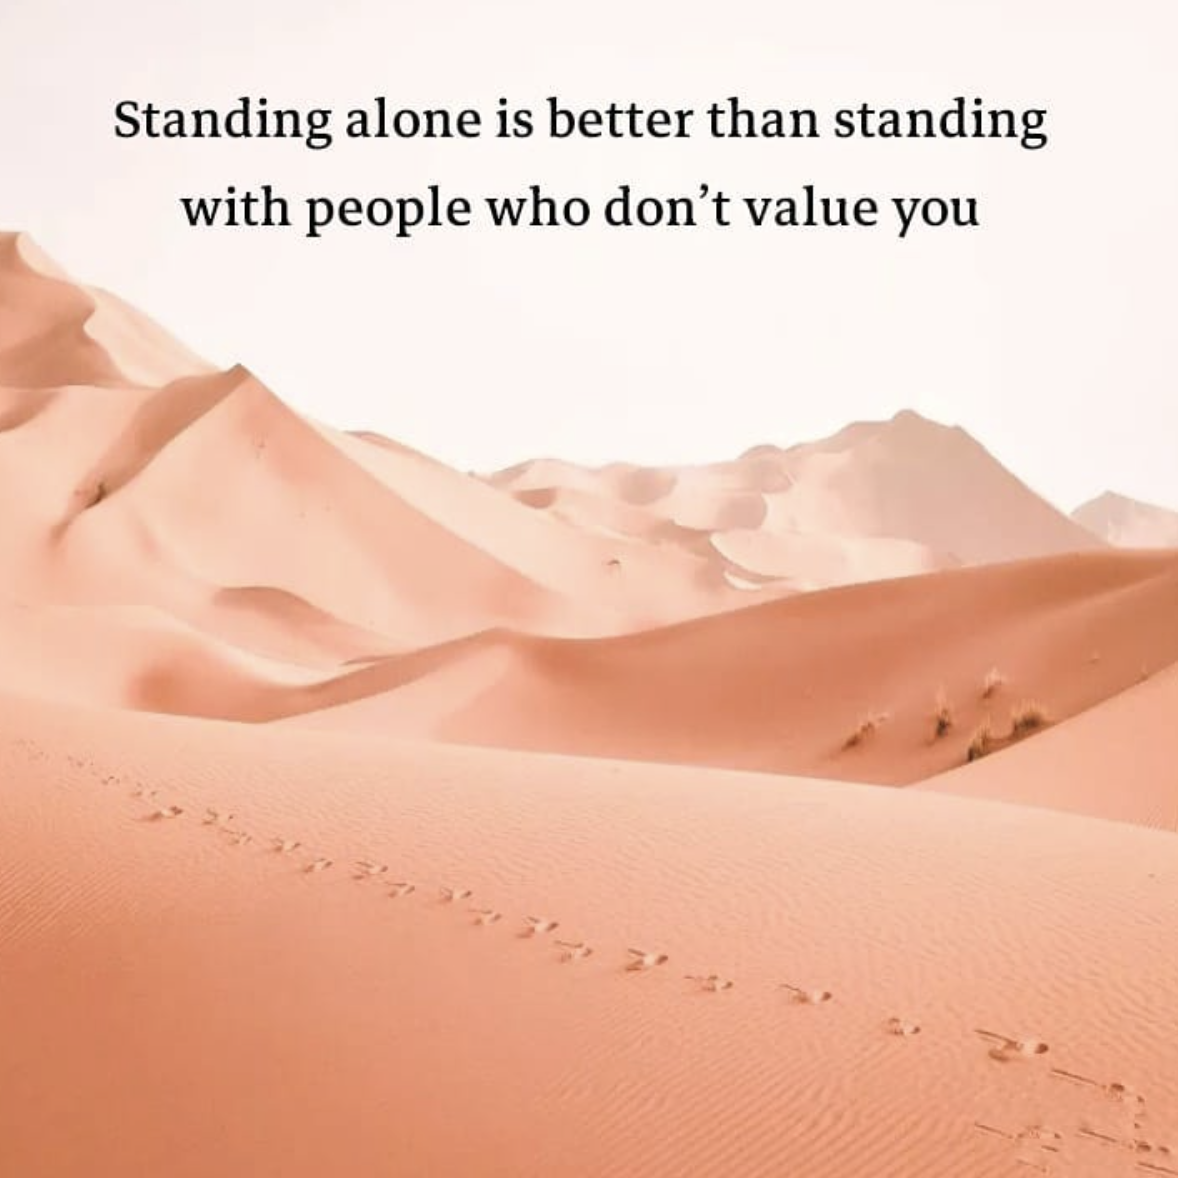 [Image] Standing alone is better than standing with people who don't value you